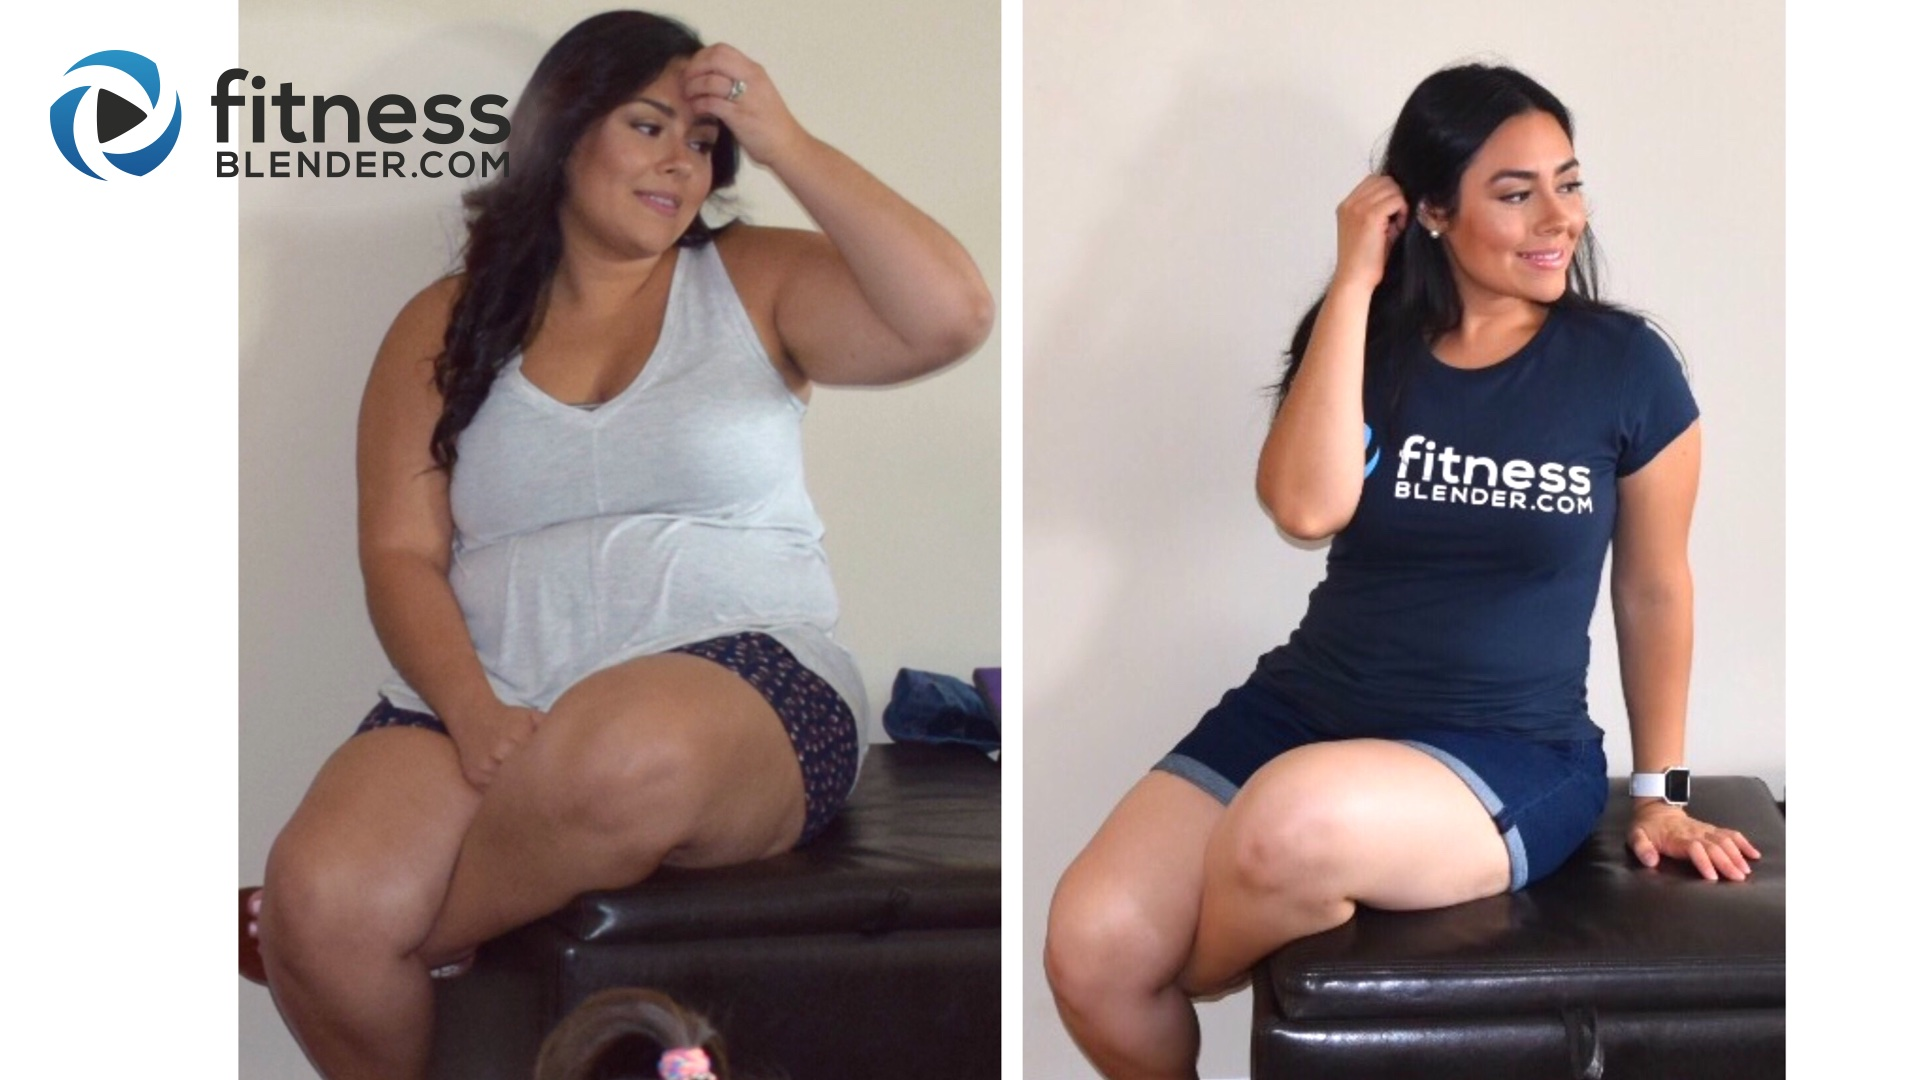 Before & After Stories & Pictures | Fitness Blender